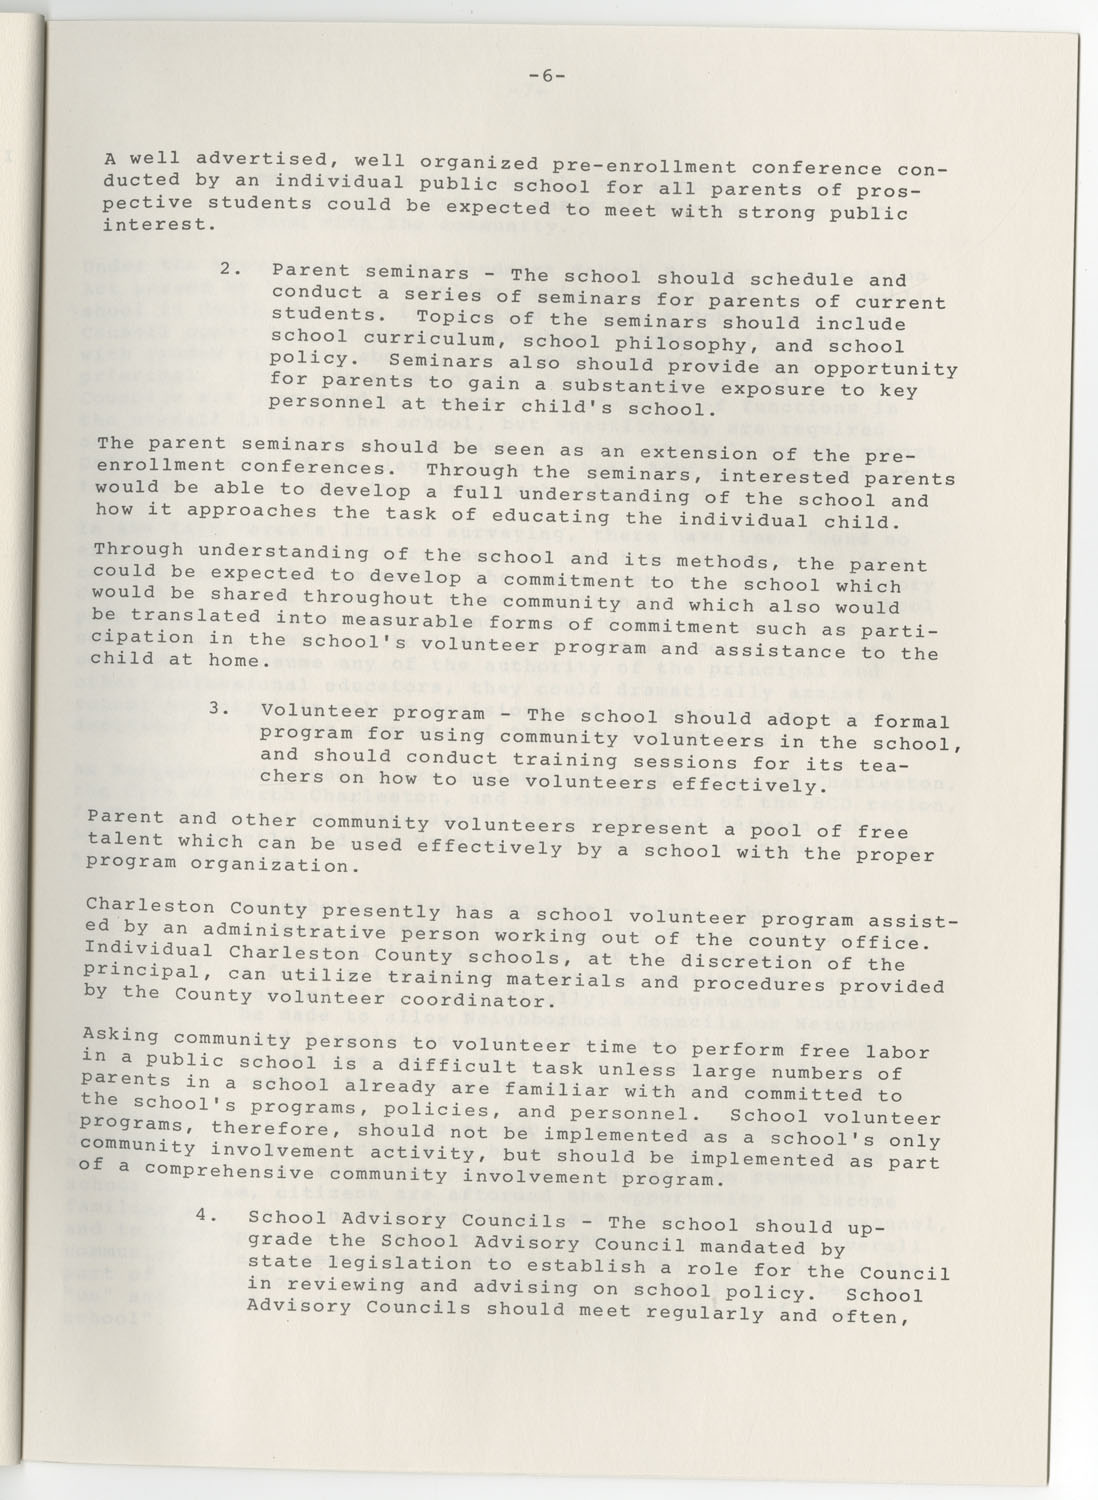 Trident 2000 Task Force Reports on Education, June 1978, Page 6